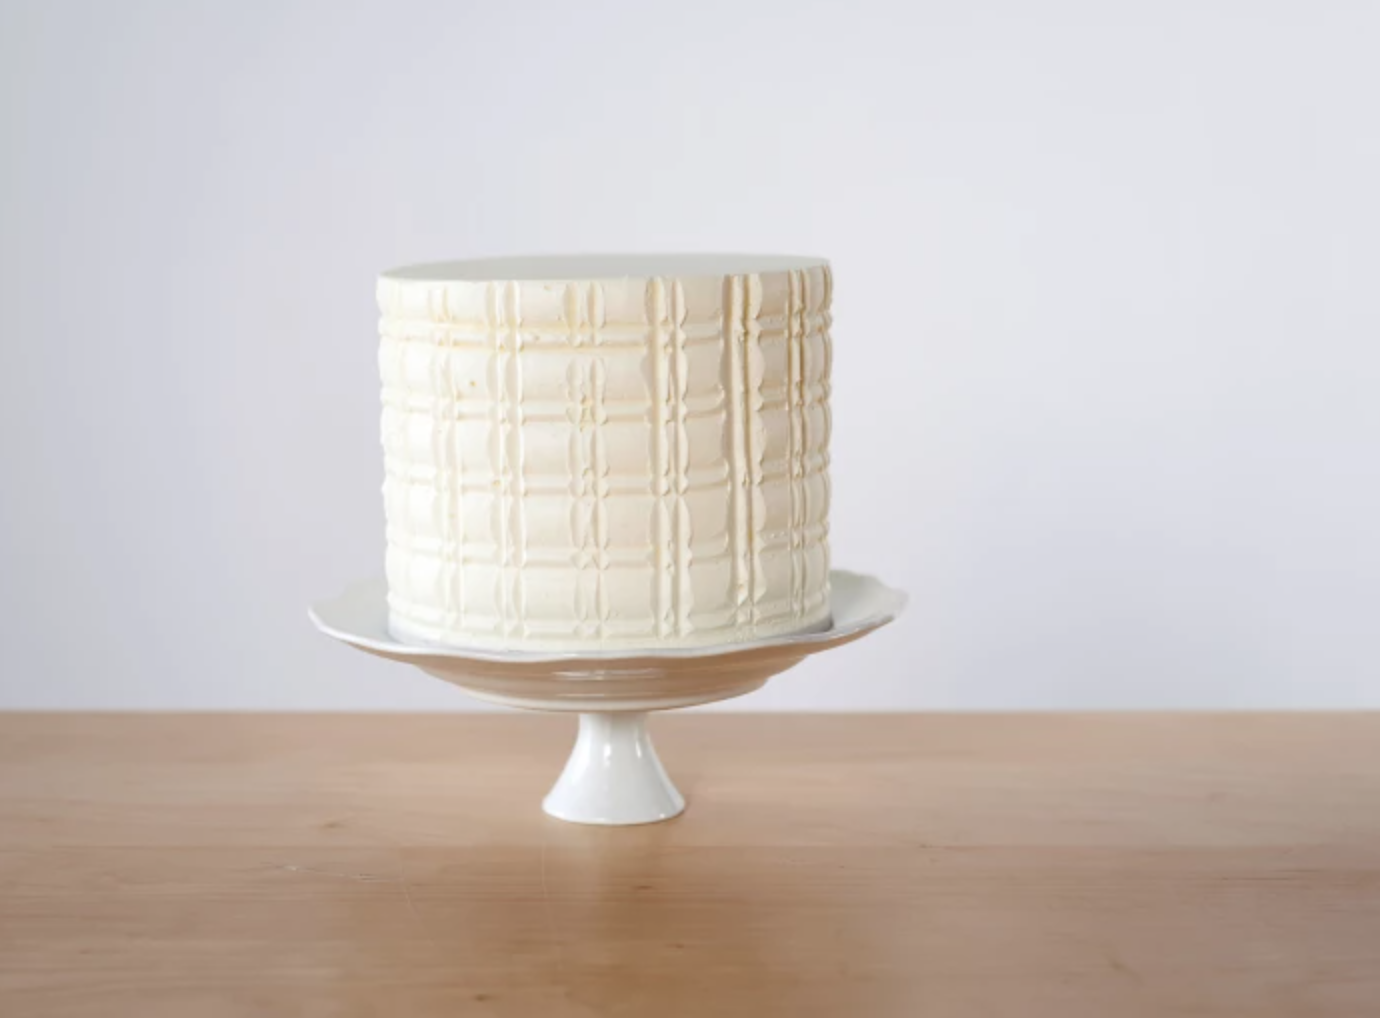 combed white cake on stand